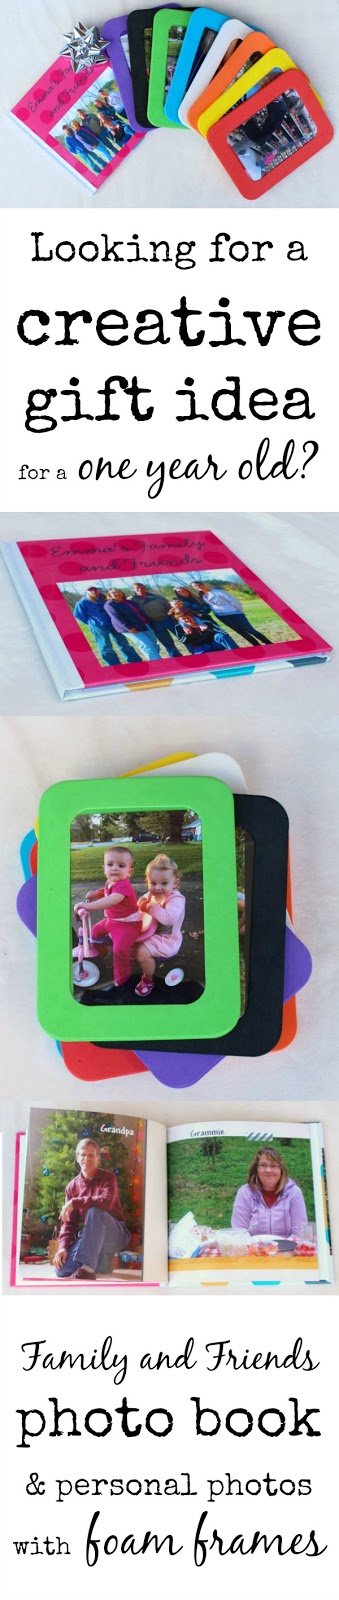 Laura\'s Plans: Creative gifts for one year olds: Part 3 of 3 (Photos ...